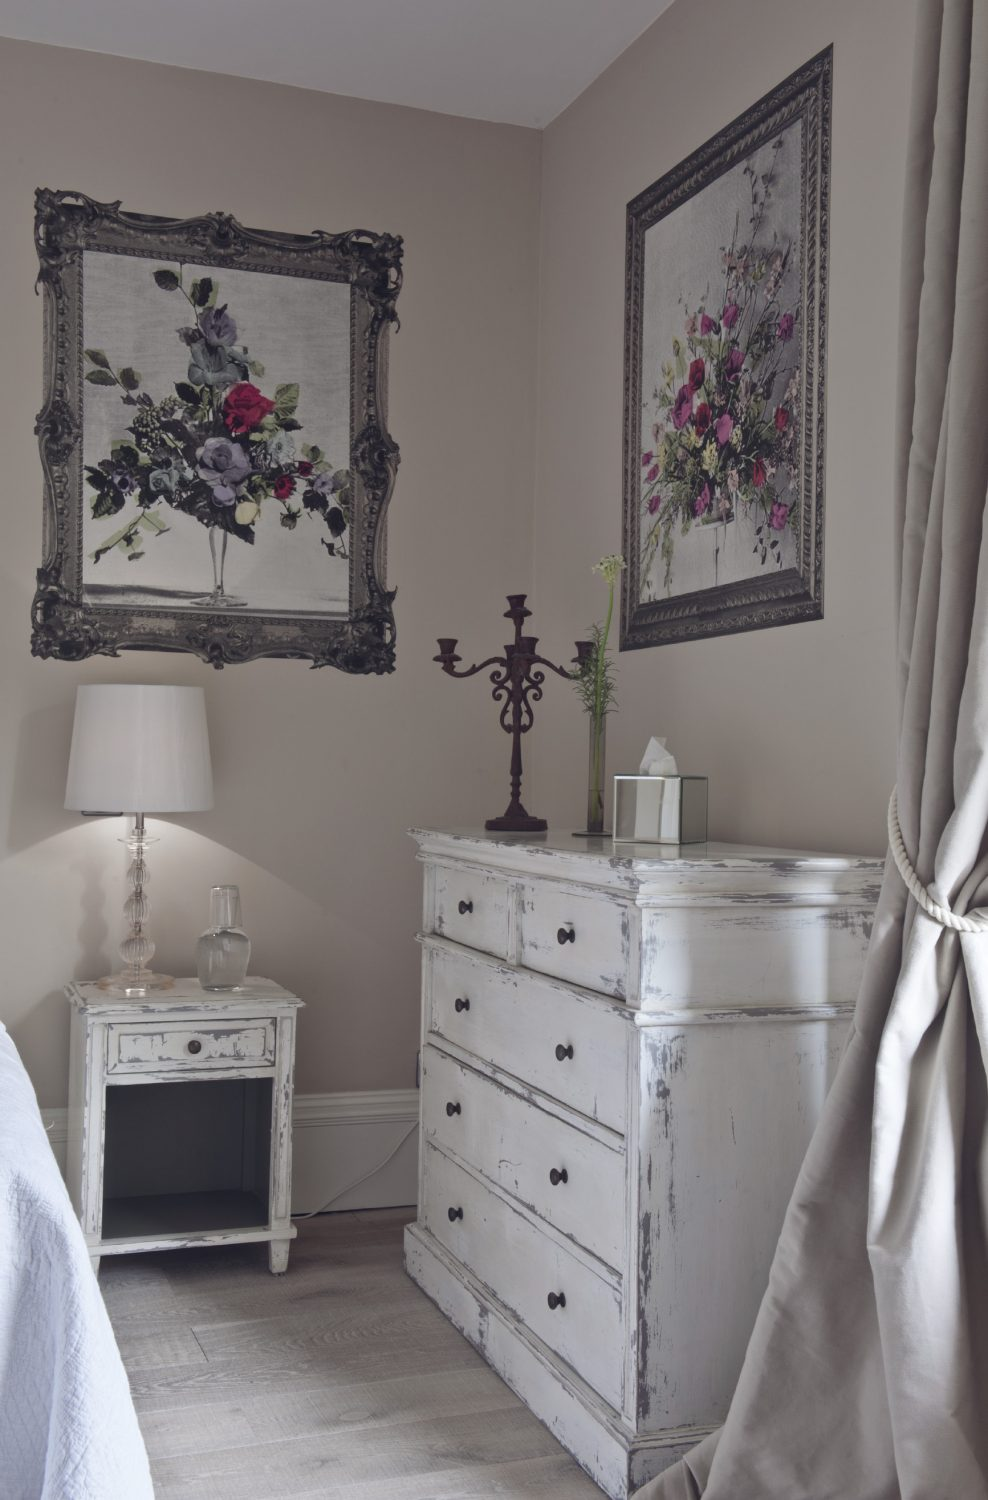 Designer Deborah Bowness' unique floral wall pieces take centre stage in the airy Croft bedroom